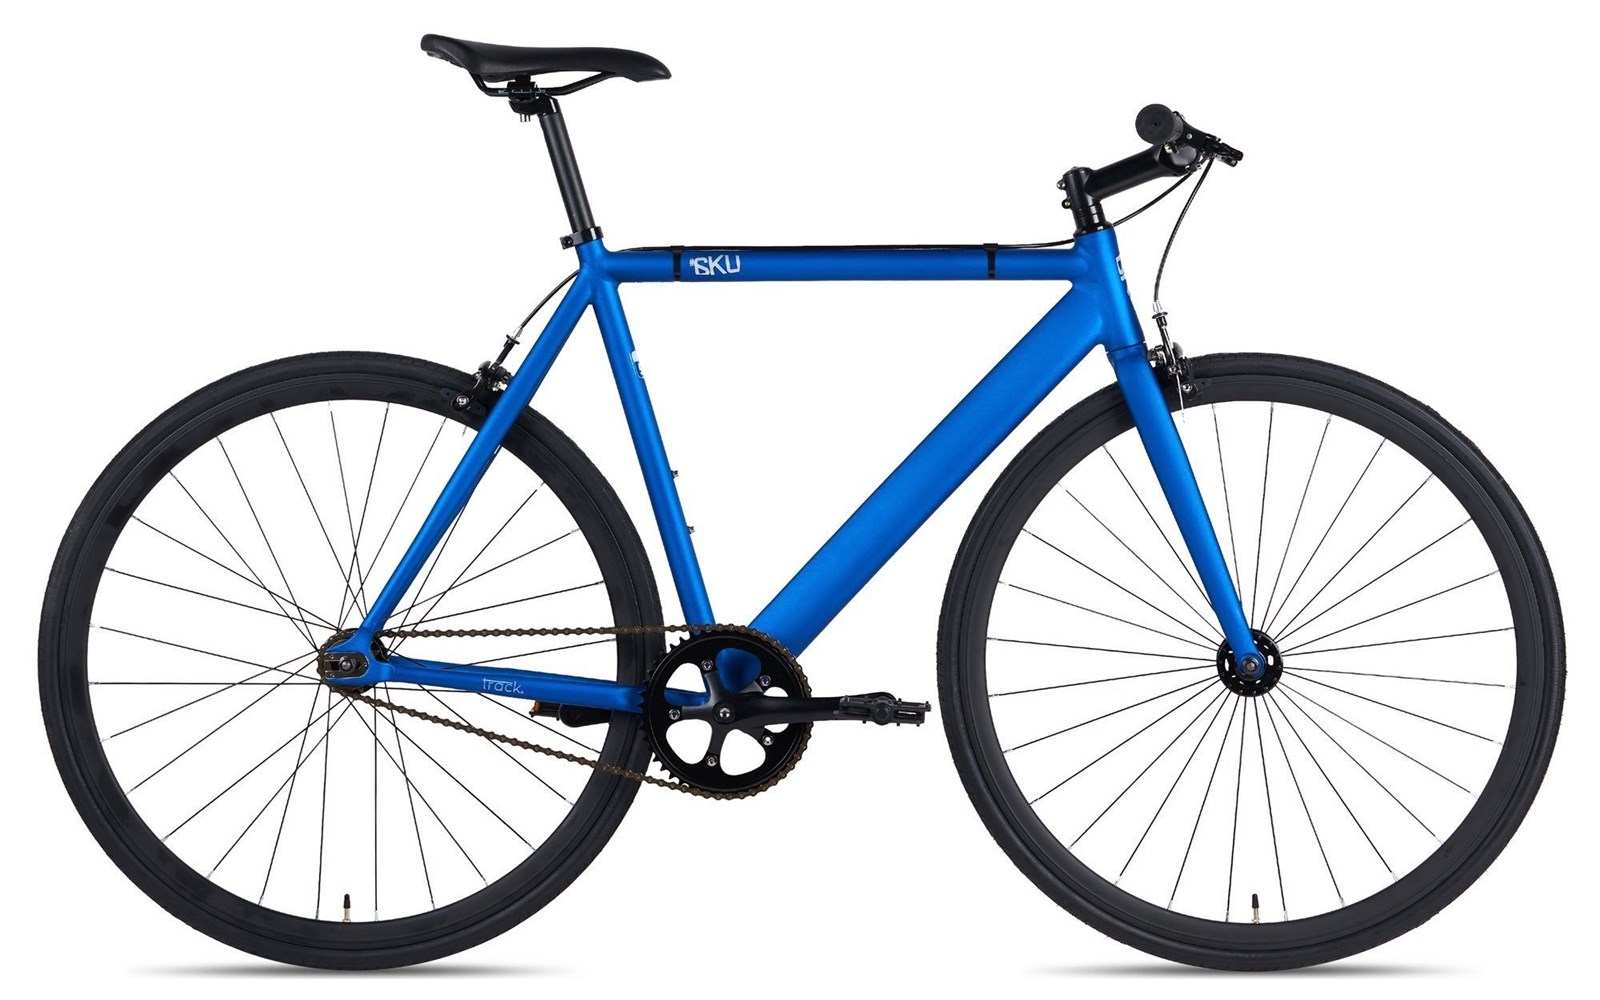 Велосипед 6KU Urban Track Blue (fixed gear) за 9499900 руб.